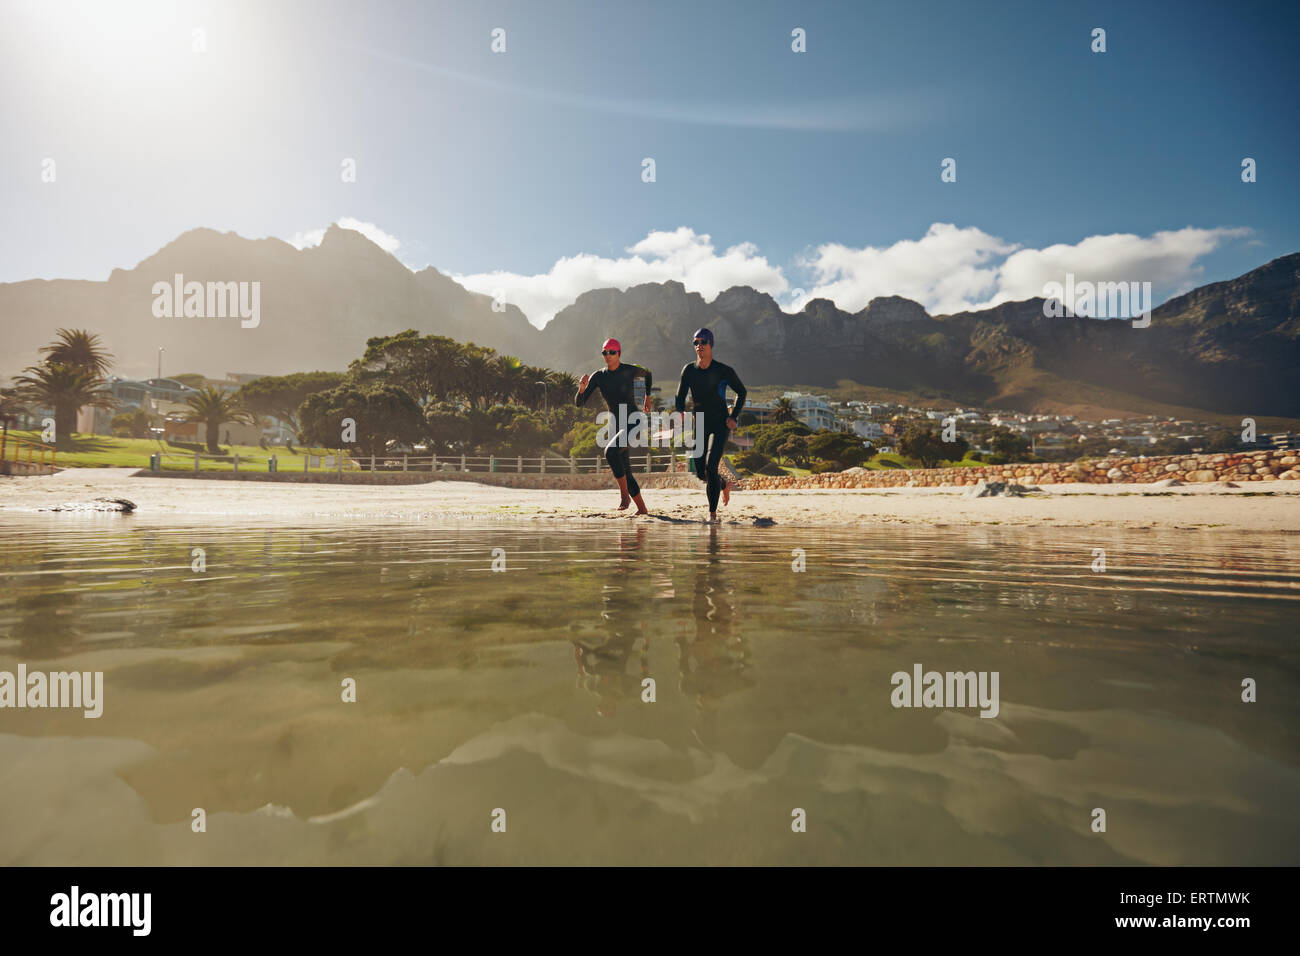 Shot of two athletes running into the water, practicing for triathlon competition. Young man and woman in wet suits - Stock Image